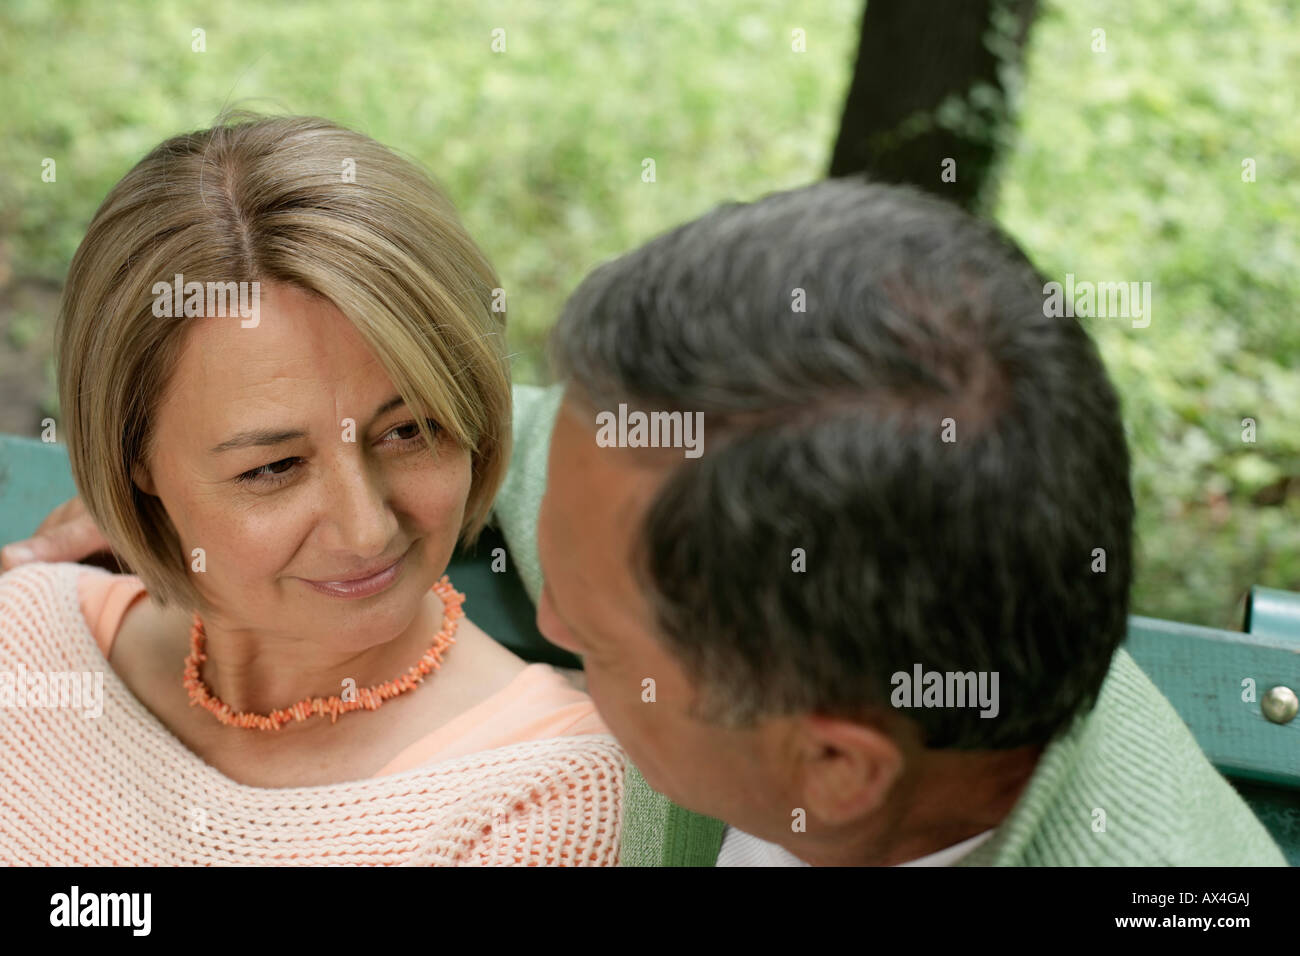 Mature couple looking into each other's eyes - Stock Image